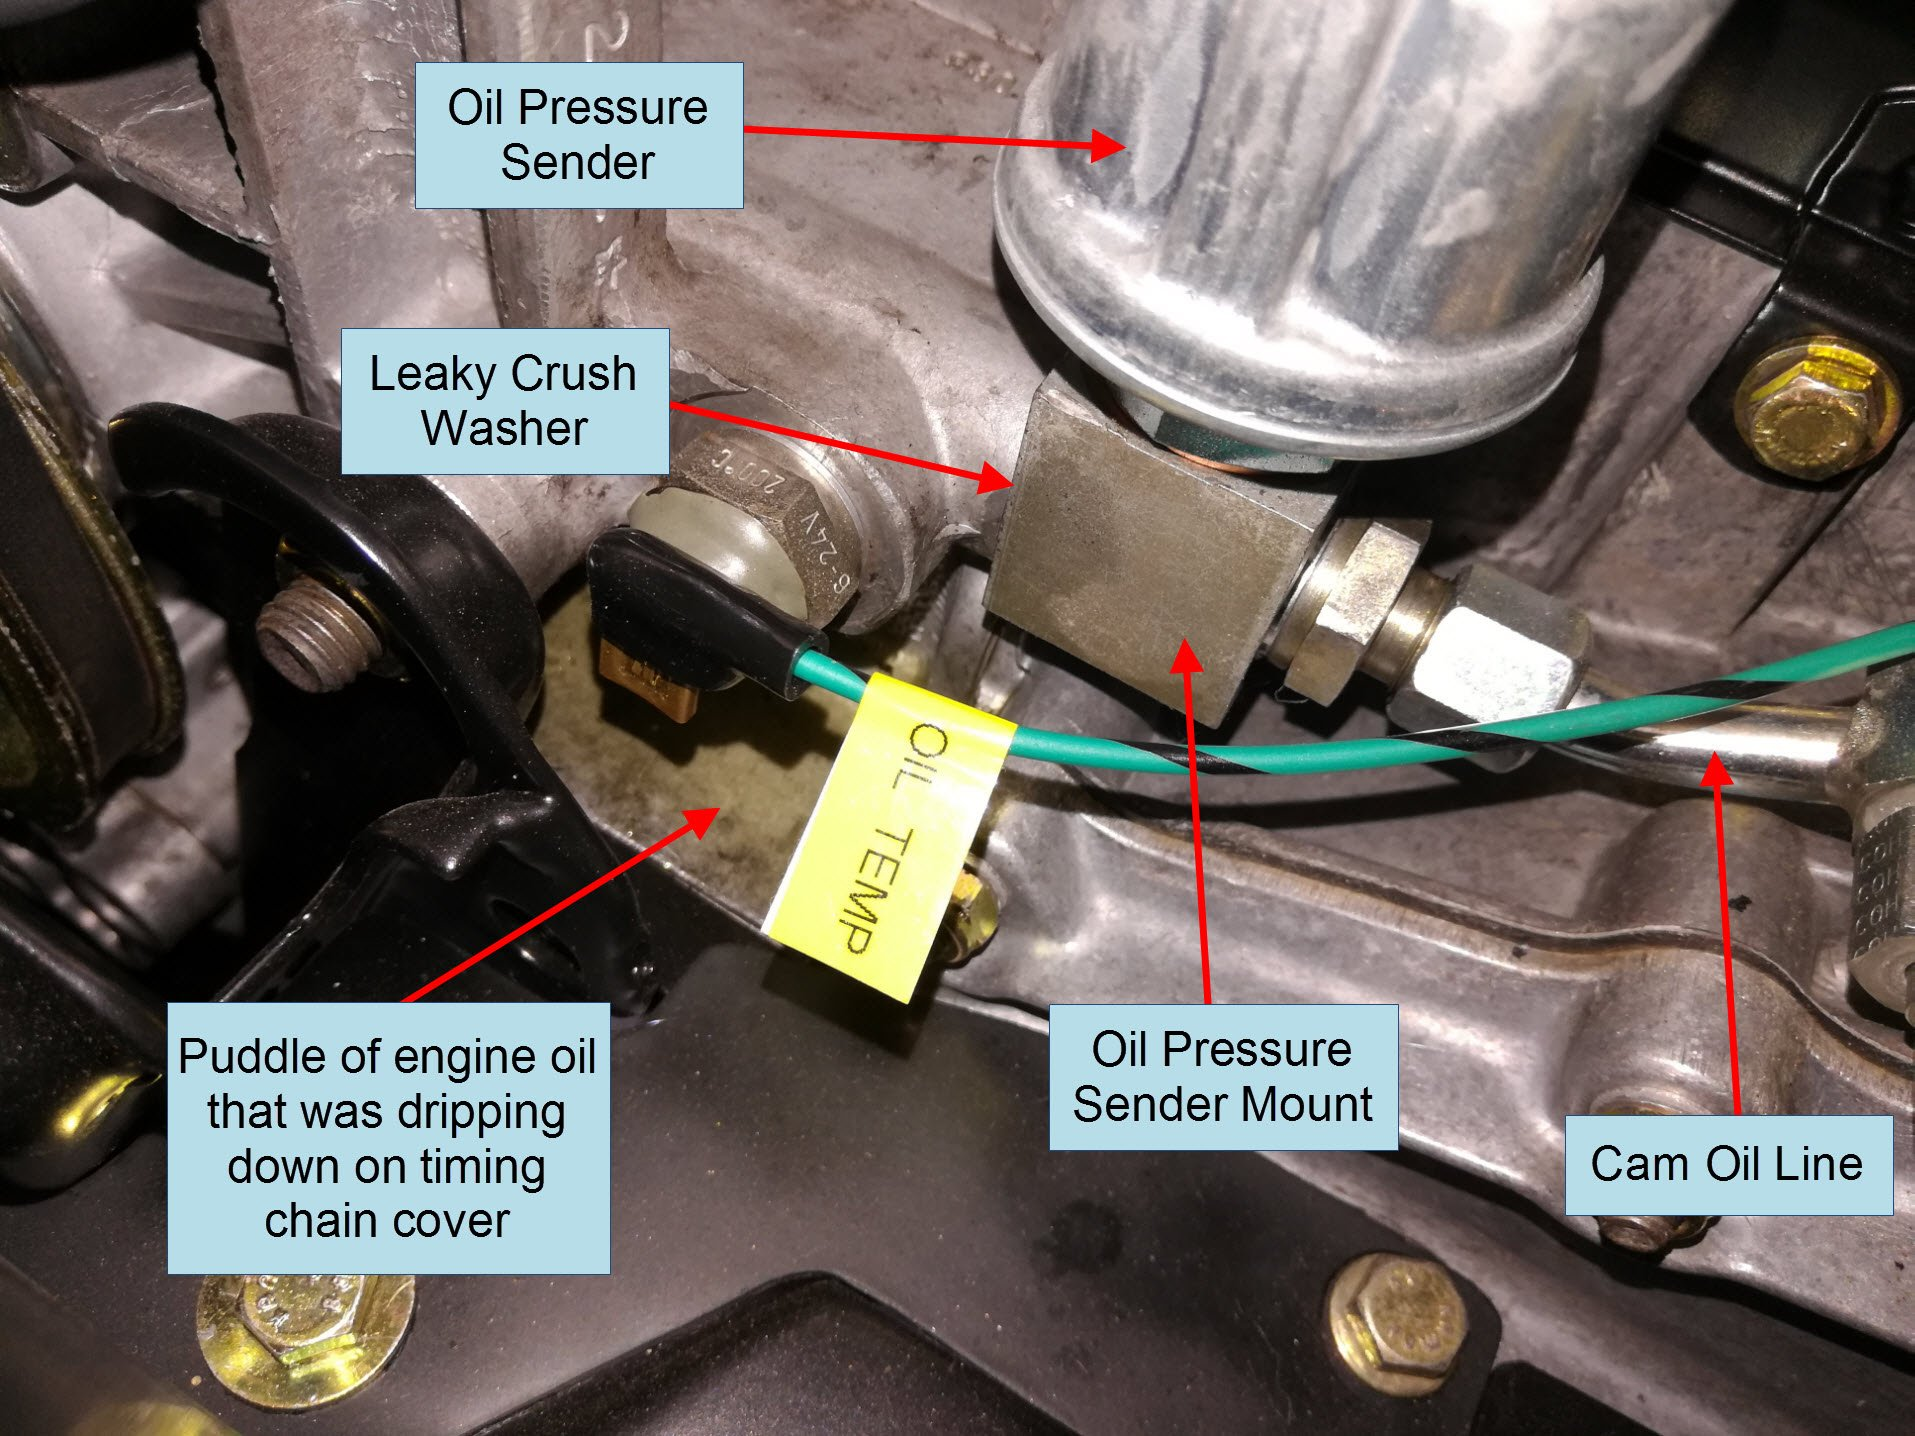 Air-cooled Porsche 911 oil pressure sender leak.